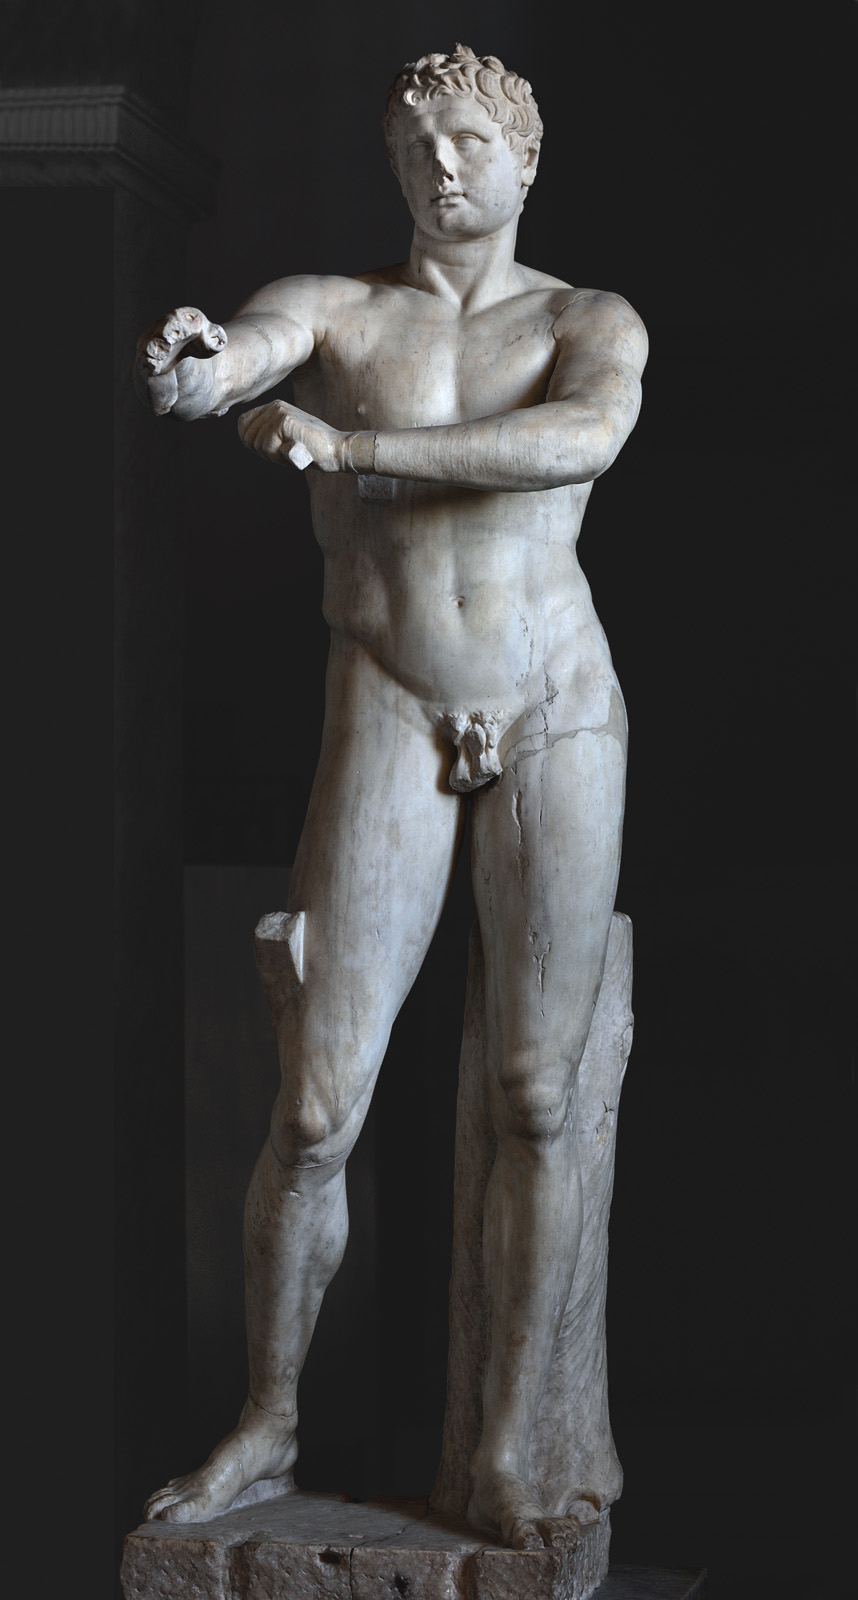 Apoxyomenos. Marble. Roman copy of the 1st century CE of a bronze original by Lysippos ca. 320 BCE. Inv. No. 1185. Rome, Vatican Museums, Pius-Clementine Museum, Apoxyomenos Cabinet, 42